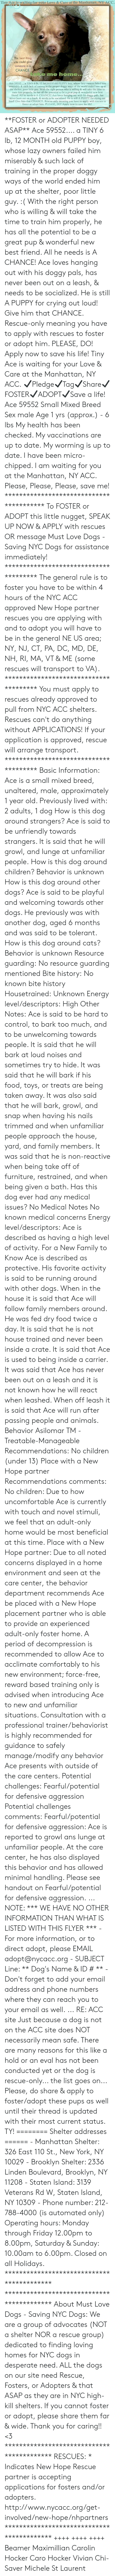 Animals, Best Friend, and Cats: Tiny Ace is waiting for your Love & Care at the Manhattan, NY ACC  The best thing  you could give  someone is a  CHANCE.  e me home..  Ace 59552. a TINY 6 lb, 12 MONTH old PUPPY boy, whose lazy owners failed him  miserably & such lack of trainng in the proper doggy ways of the world ended him up at  the shelter, poor little guy. With the right person who is willing & will take the time to  train him properly, he has all the potential to be a great pup & wonderful new best  friend. All he needs is A CHANCE! Ace loves hanging out with his doggy pals, has  never been out on a leash, & needs to be socialized. He is still A PUPPY for crying out  loud! Give him that CHANCE. Rescue-only meaning you have to apply with rescues to  foster or adopt him. PLEASE, DO! Apply now to save his life! **FOSTER or ADOPTER NEEDED ASAP** Ace 59552.... a TINY 6 lb, 12 MONTH old PUPPY boy, whose lazy owners failed him miserably & such lack of training in the proper doggy ways of the world ended him up at the shelter, poor little guy. :( With the right person who is willing & will take the time to train him properly, he has all the potential to be a great pup & wonderful new best friend. All he needs is A CHANCE! Ace loves hanging out with his doggy pals, has never been out on a leash, & needs to be socialized. He is still A PUPPY for crying out loud! Give him that CHANCE. Rescue-only meaning you have to apply with rescues to foster or adopt him. PLEASE, DO! Apply now to save his life! Tiny Ace is waiting for your Love & Care at the Manhattan, NY ACC.  ✔Pledge✔Tag✔Share✔FOSTER✔ADOPT✔Save a life!  Ace 59552 Small Mixed Breed Sex male Age 1 yrs (approx.) - 6 lbs My health has been checked.  My vaccinations are up to date. My worming is up to date.  I have been micro-chipped.  I am waiting for you at the Manhattan, NY ACC. Please, Please, Please, save me!  **************************************** To FOSTER or ADOPT this little nugget, SPEAK UP NOW  &  APPLY with 